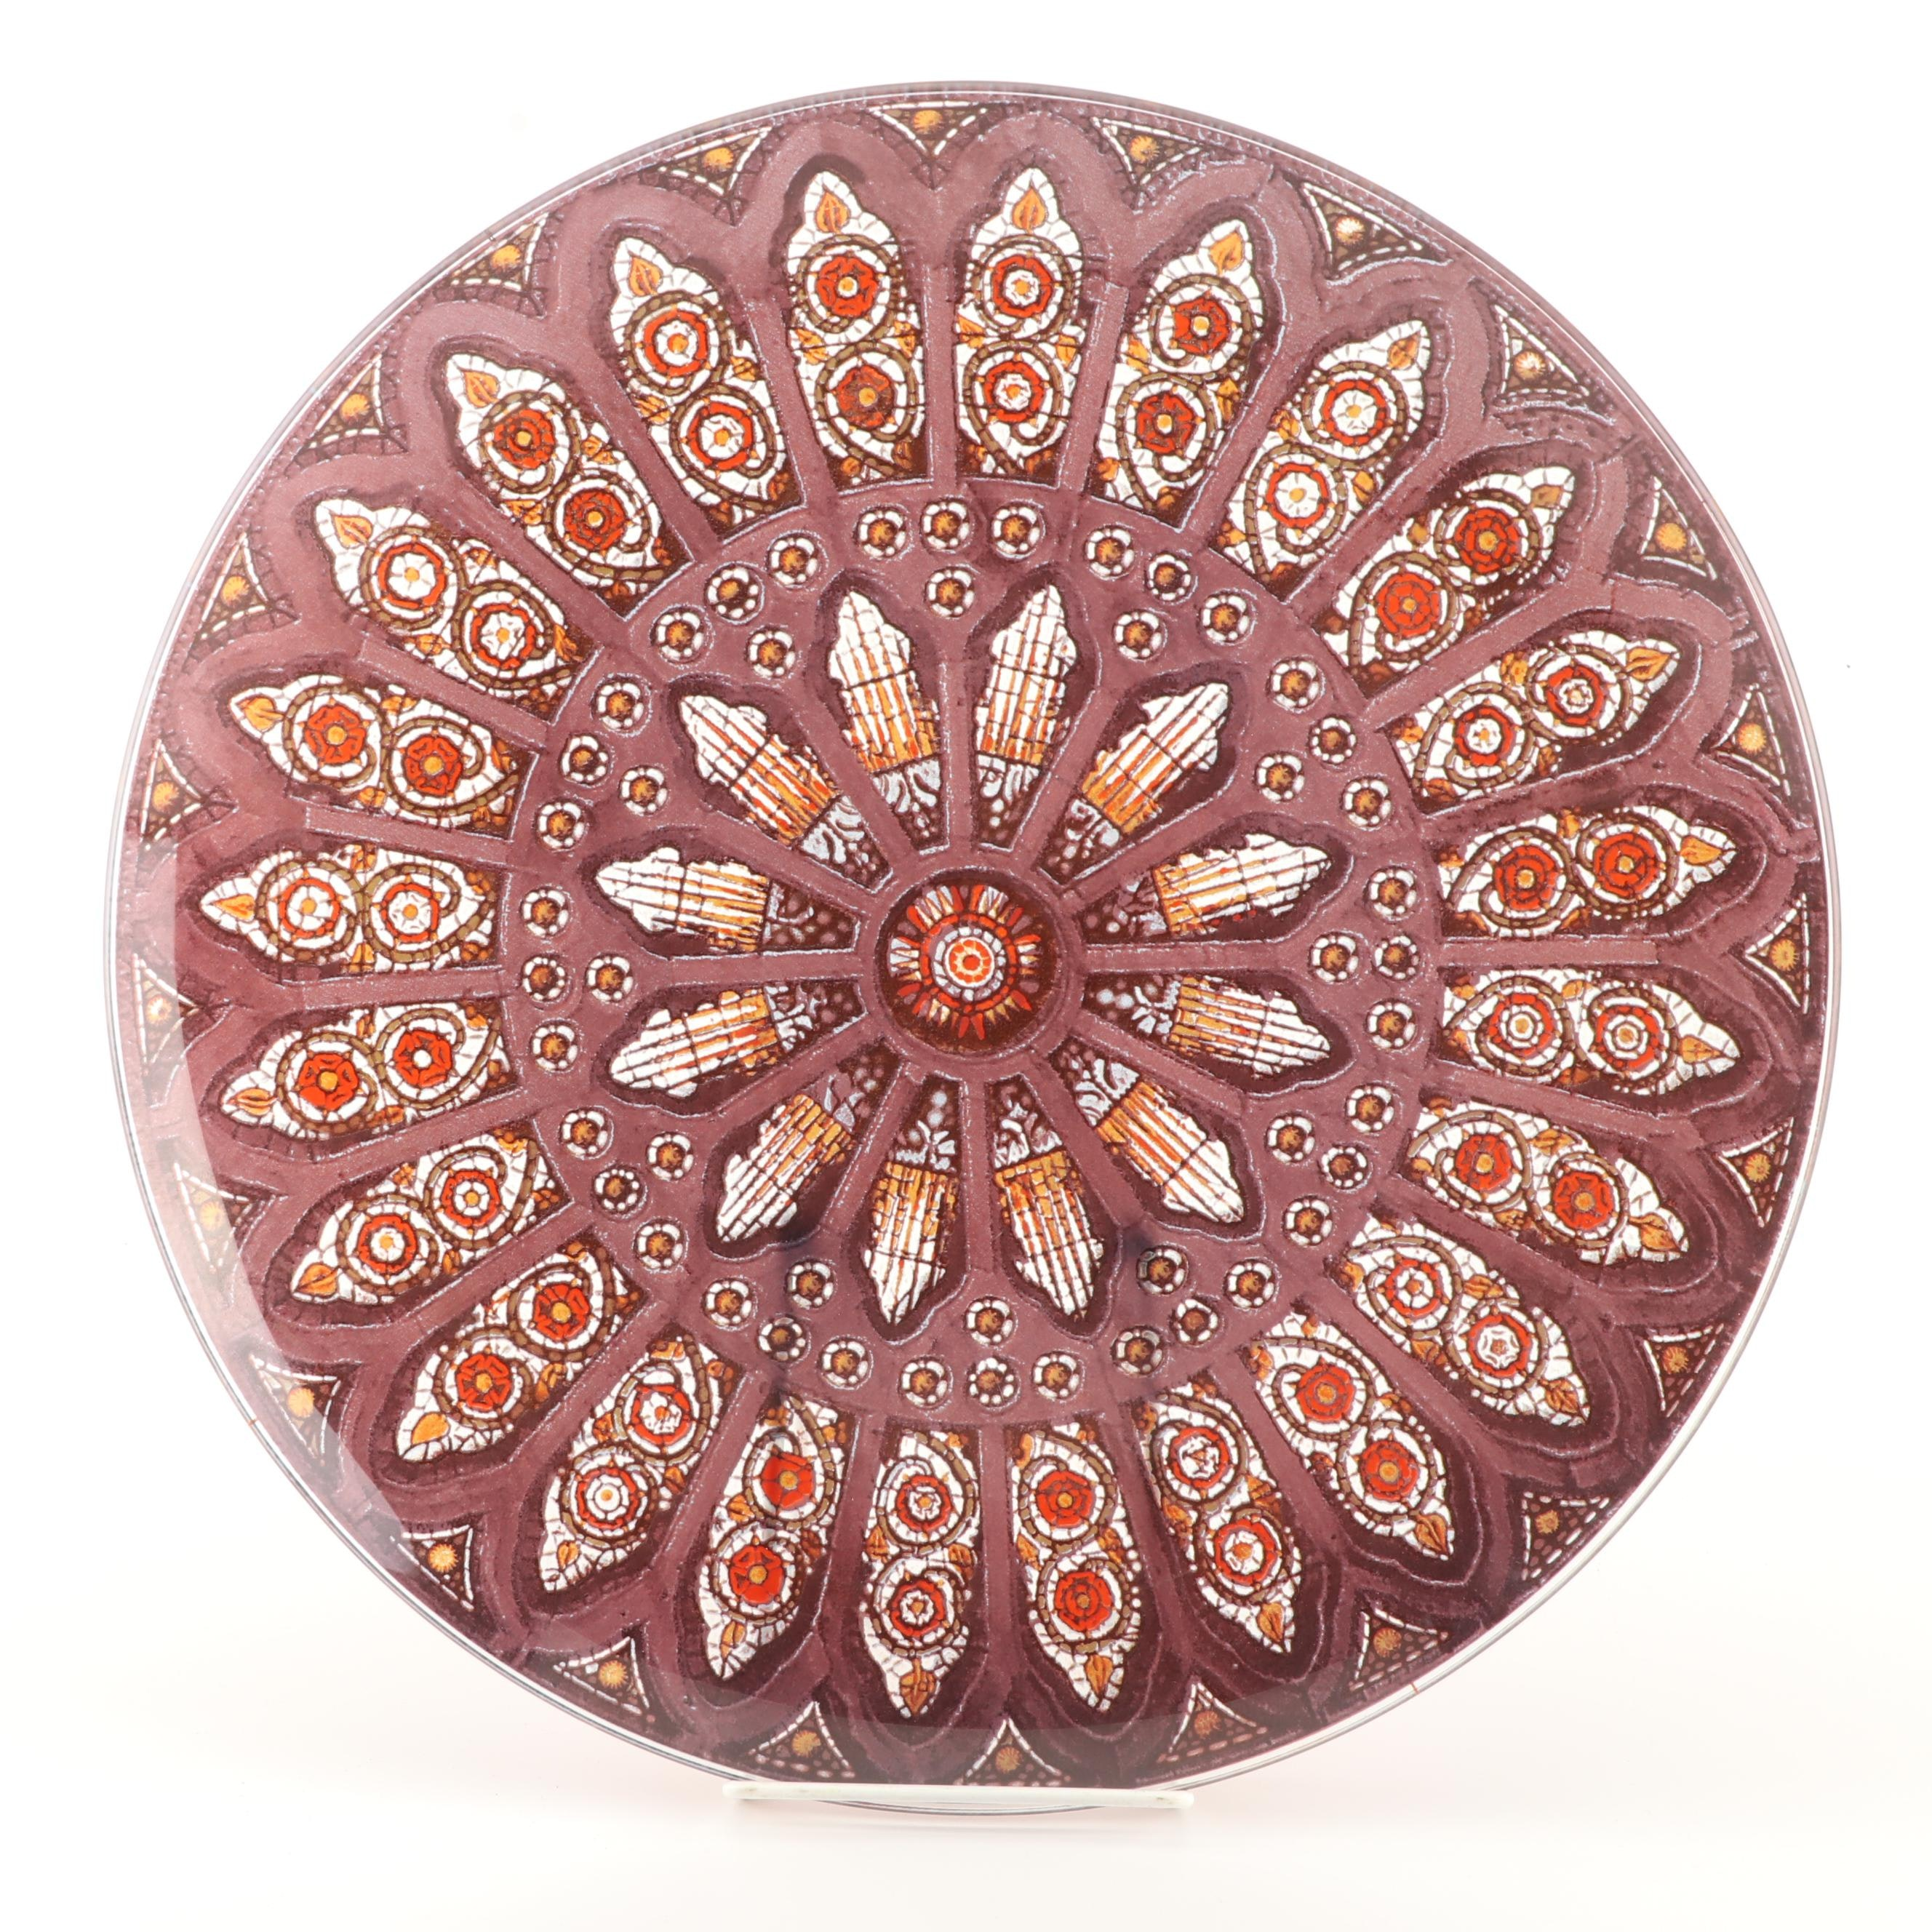 Reverse Painted Stained Glass Motif Glass Platter